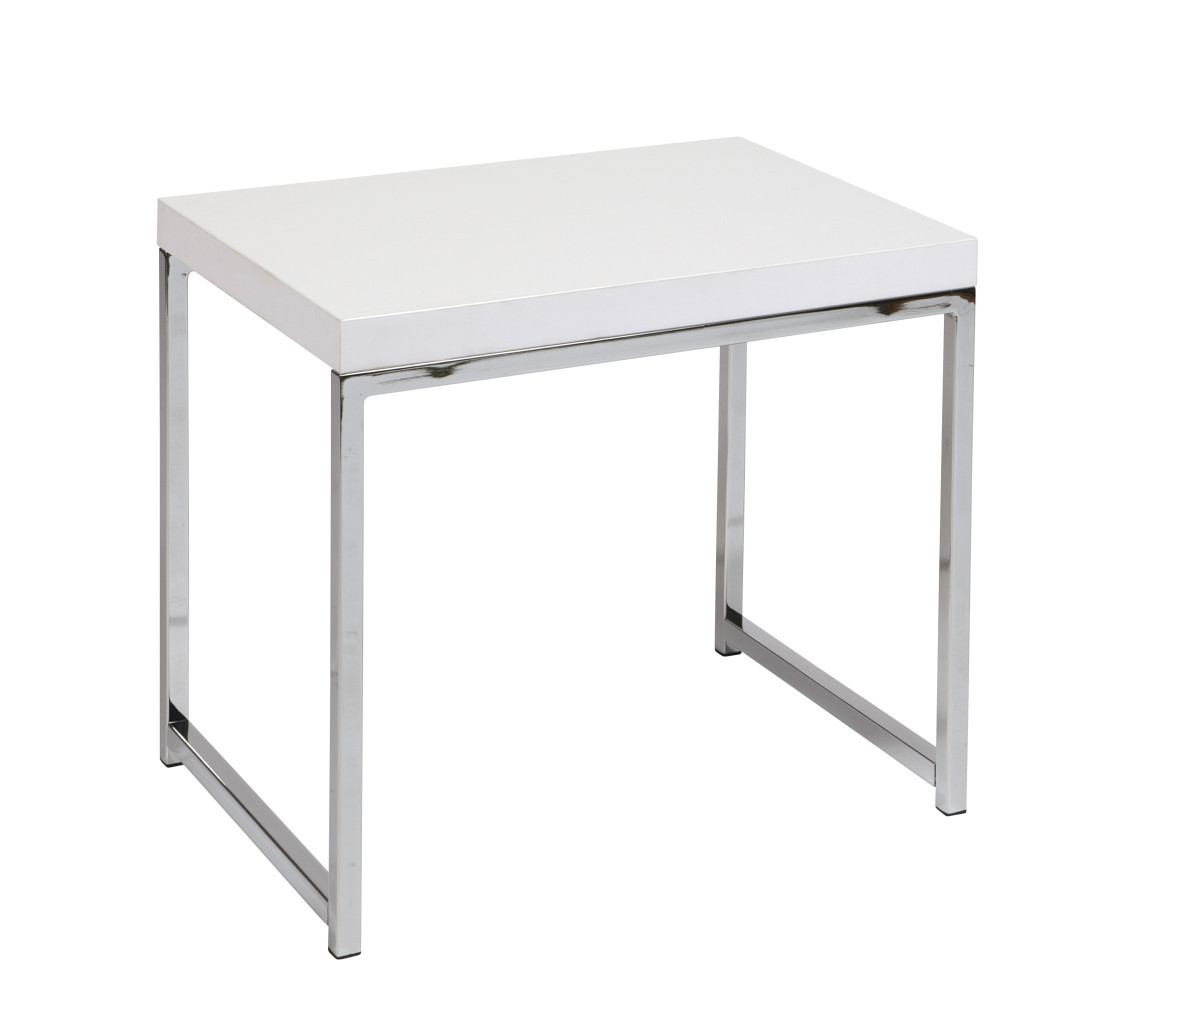 Wall street end table in white ergobackcom for White end tables